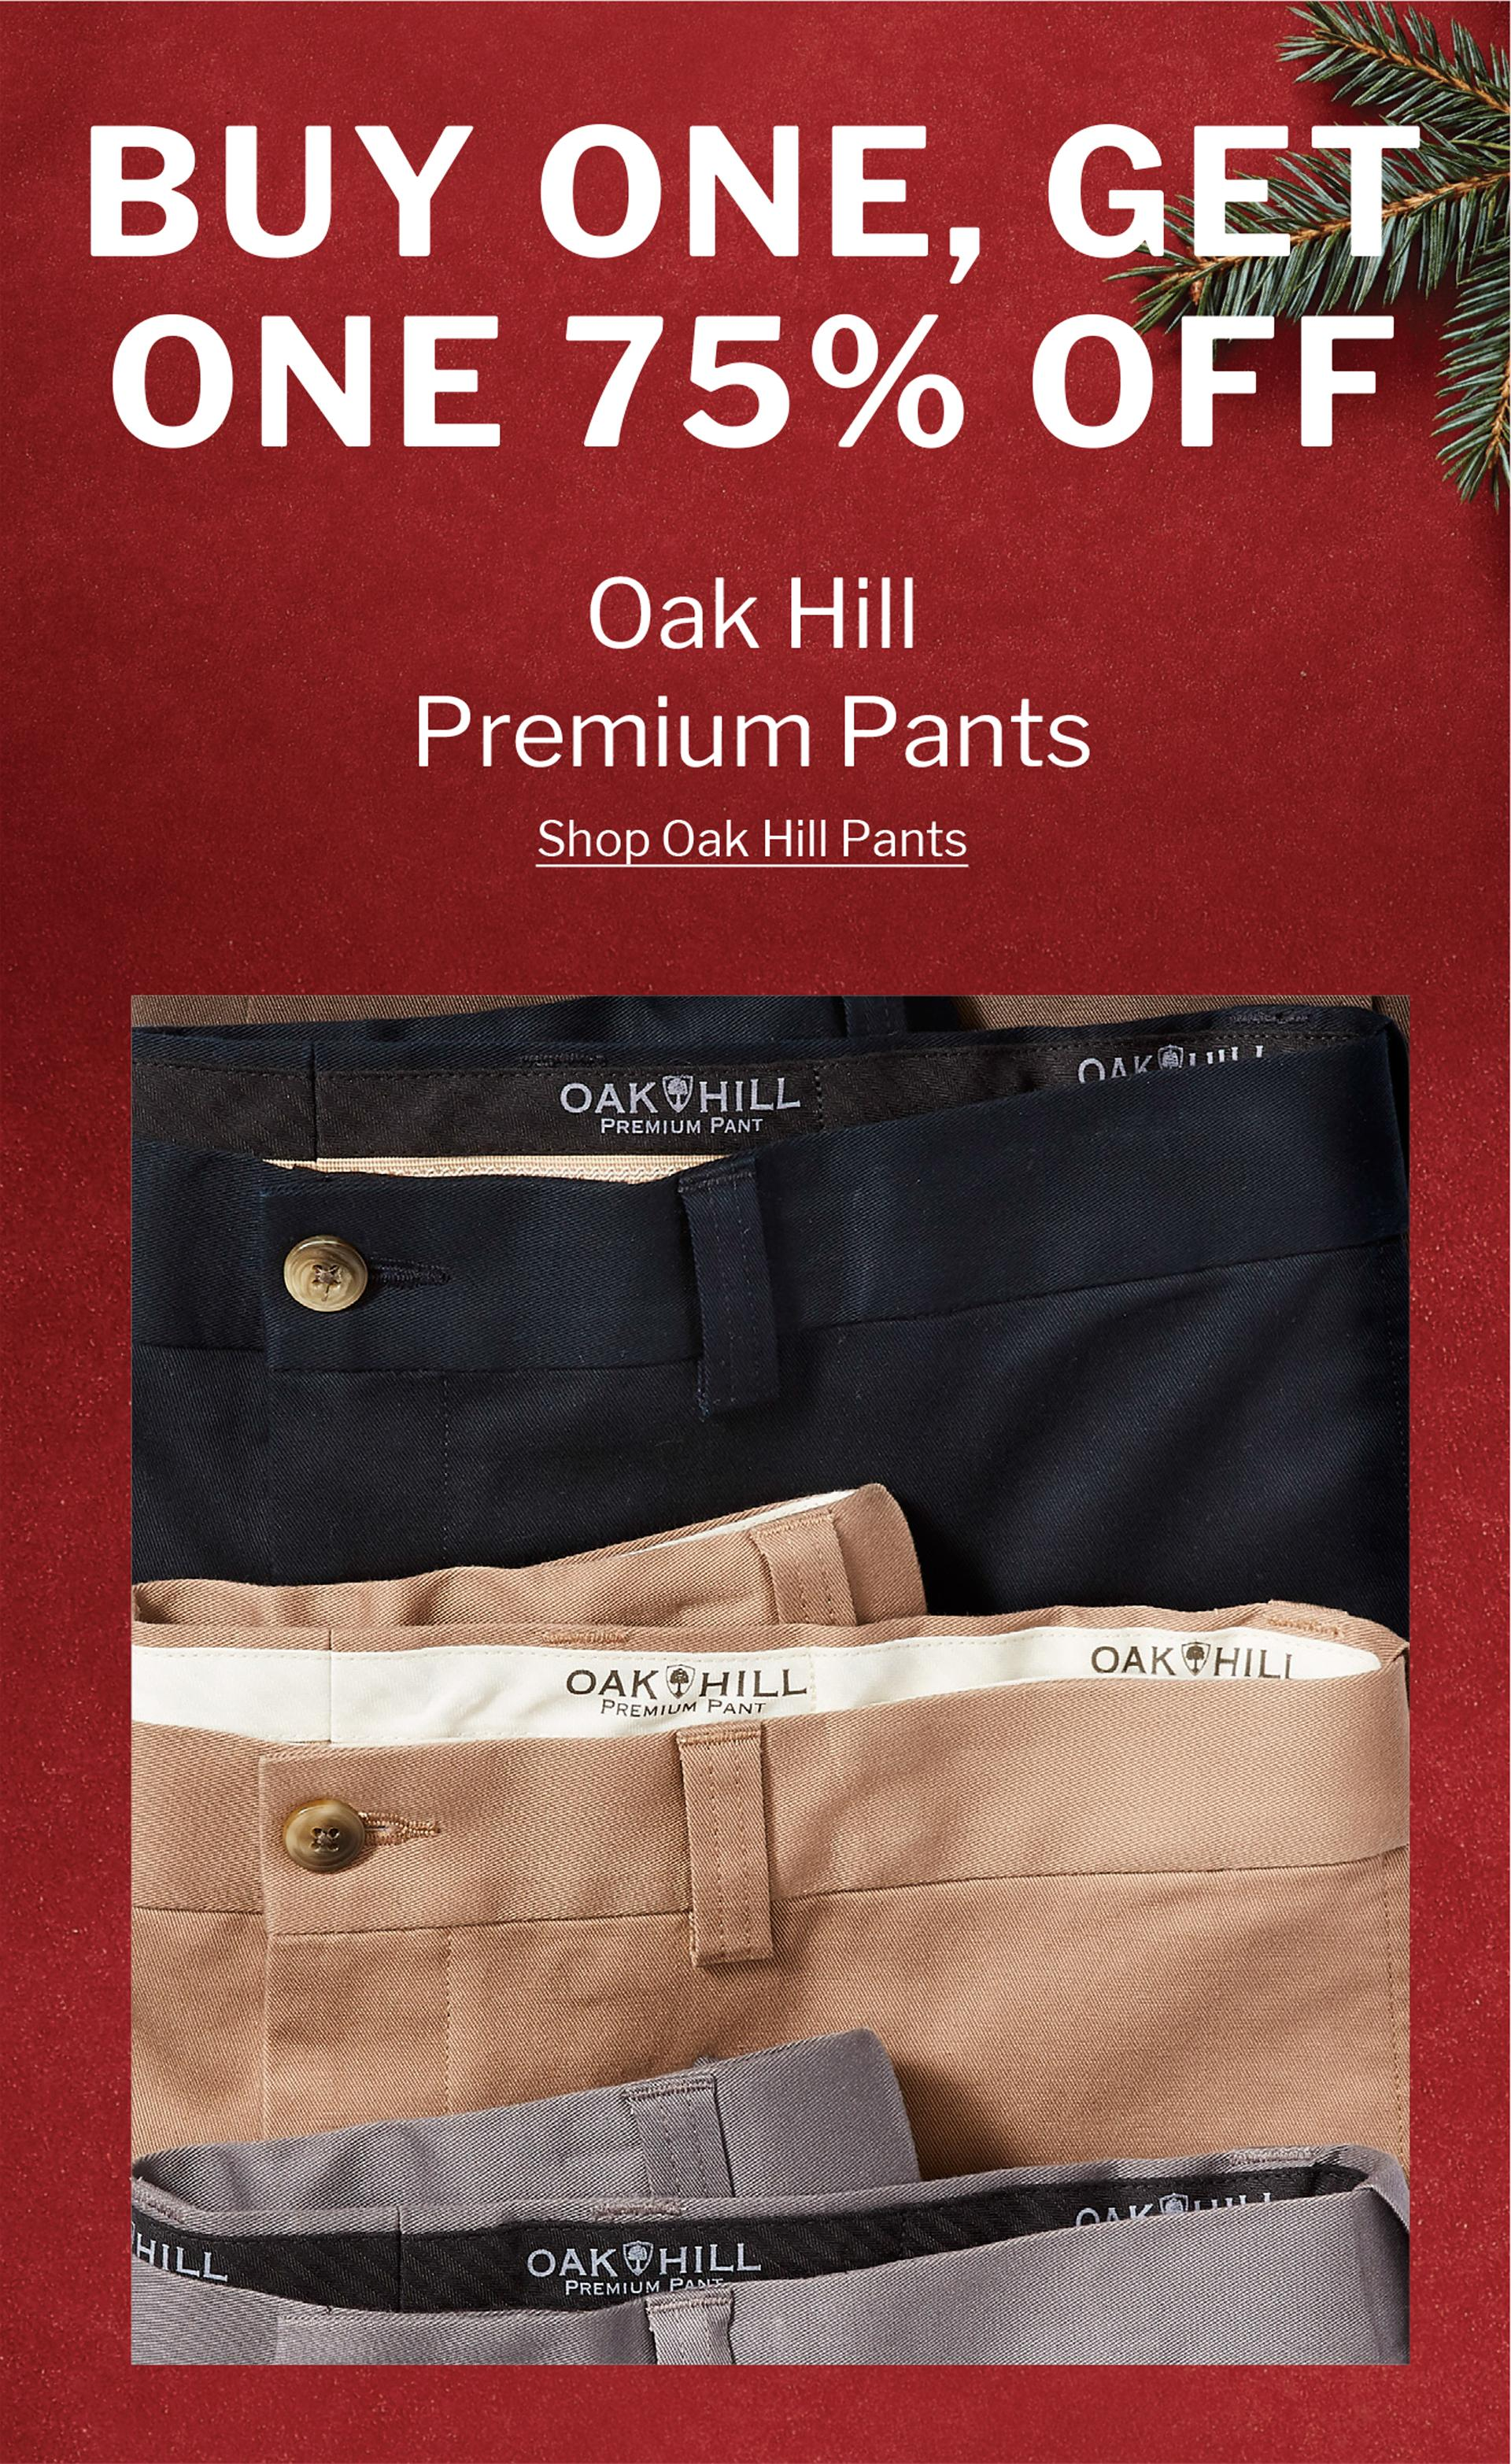 BUY ONE, GET ONE 75% OFF | OAK HILL PREMIUM PANTS